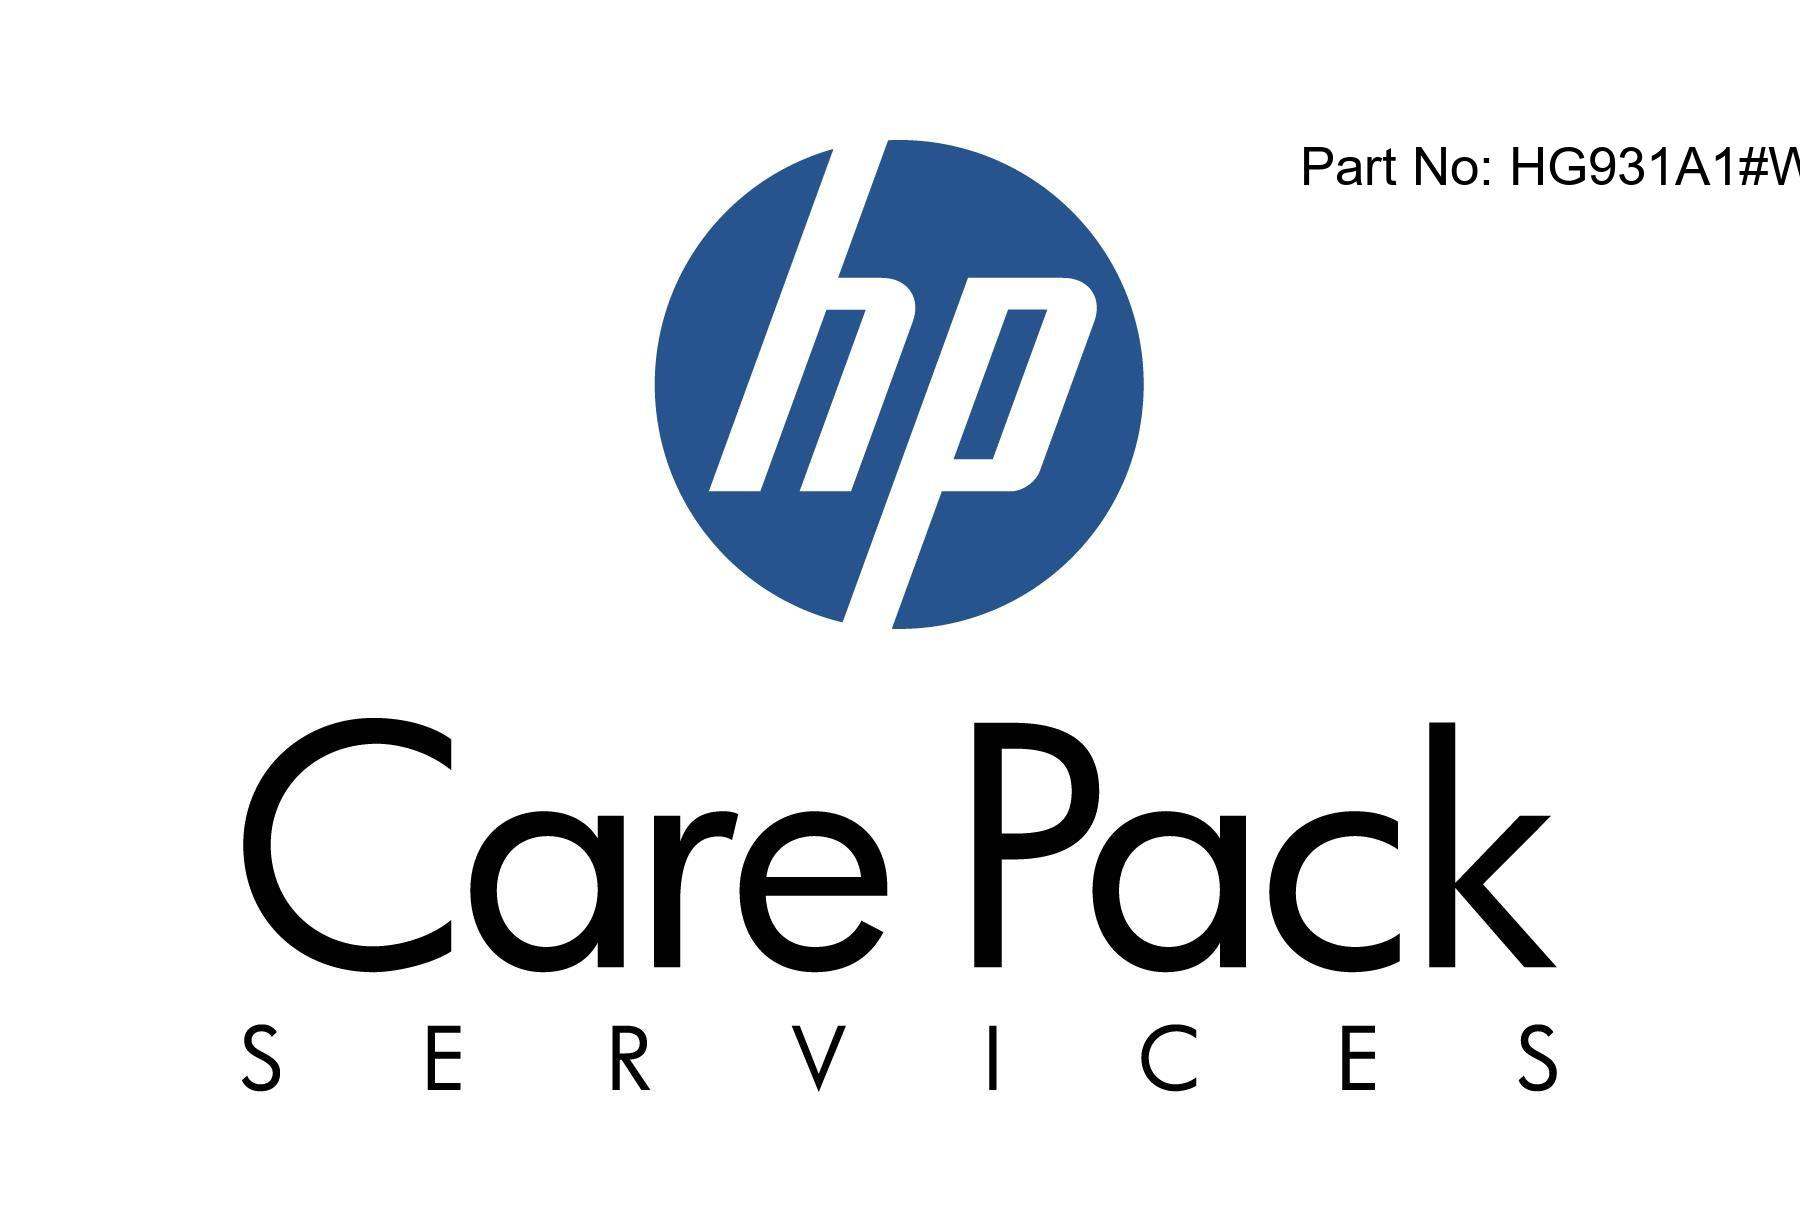 Proactive 24 with Defective Media Retention - Technical support - for HP-UX High Availability Operating Environment / Serviceguard Cluster File System - 8 - 16 sockets - phone consulting - 1 year - 24x7 - response time: 2 h